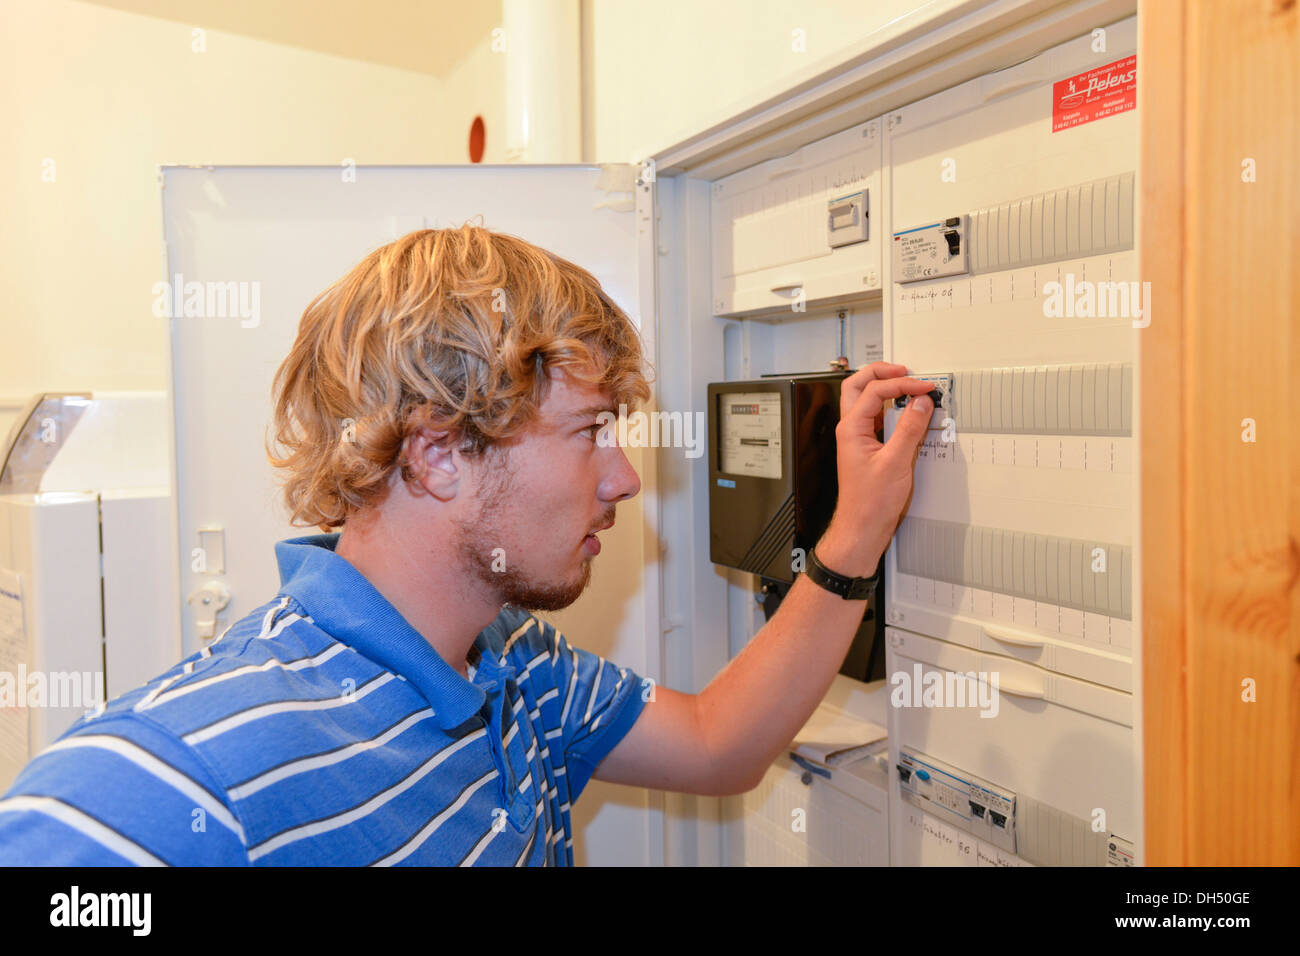 Young man turning off a fuse in a fuse box - Stock Image